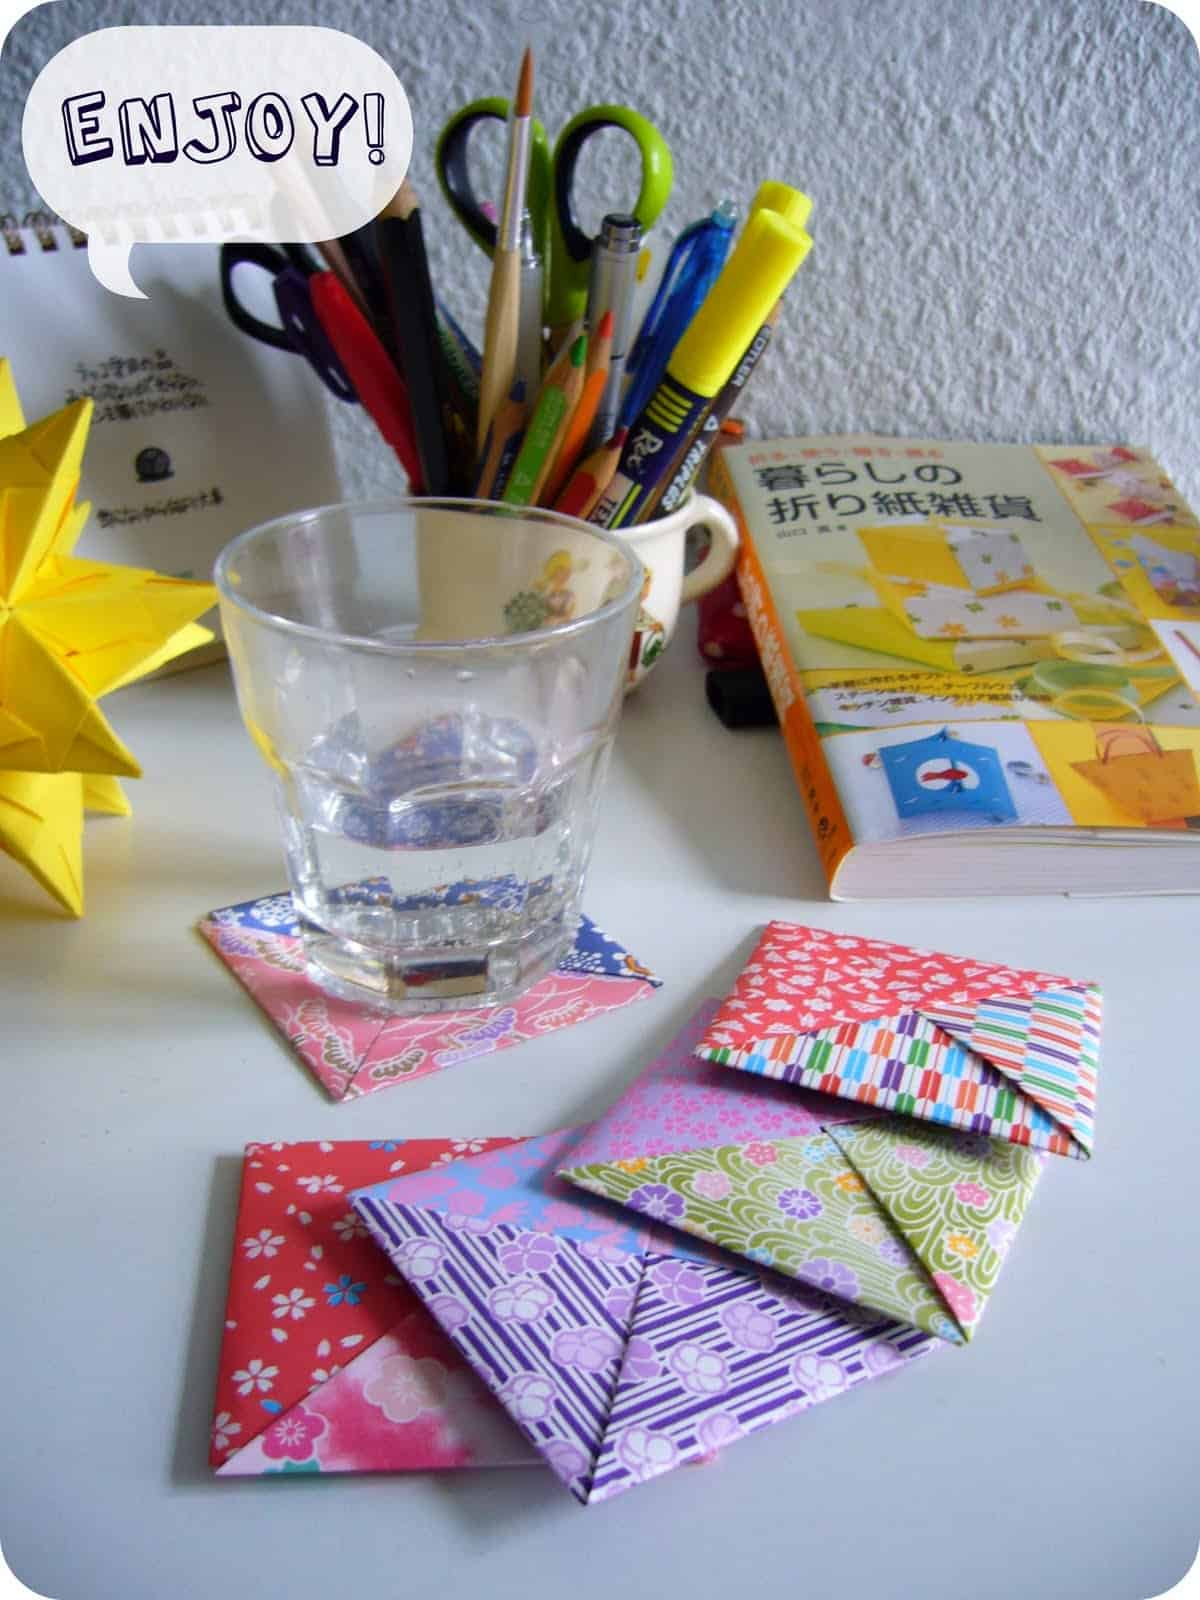 Patterned origami coasters